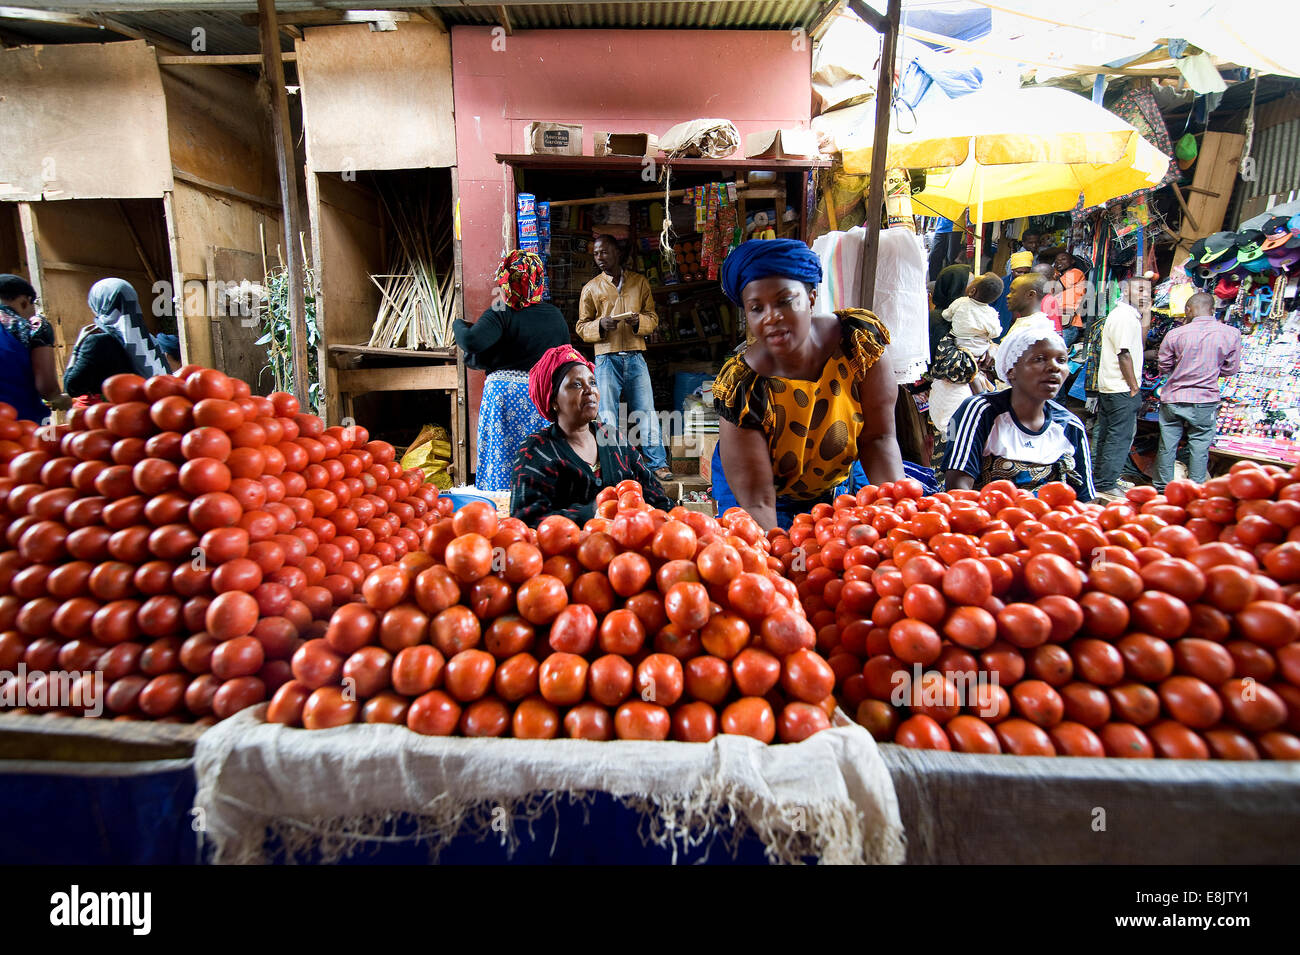 RWANDA, KIGALI: A big market in the capital offers everything: food, clothes, kitchen equipment, herbal medicine. - Stock Image